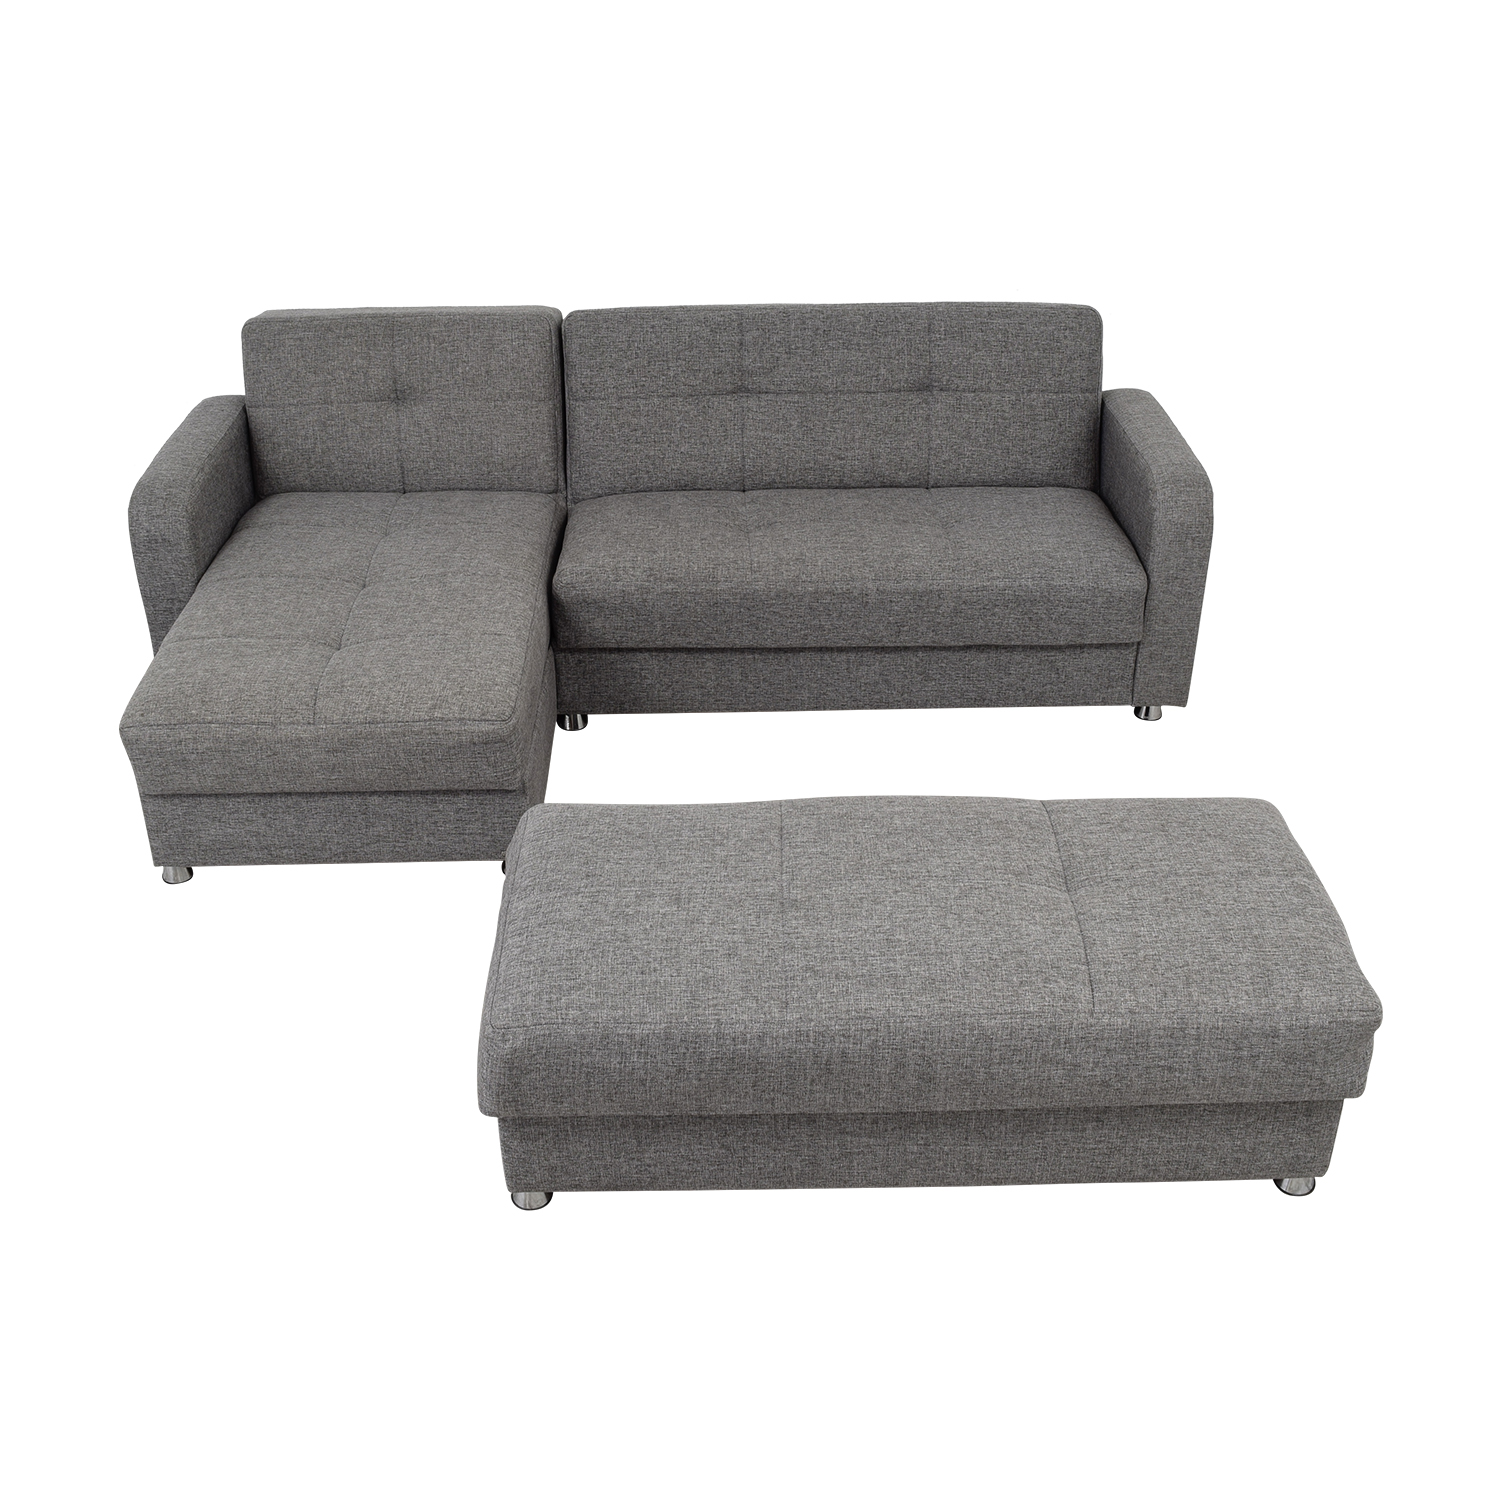 Istikbal Grey Convertible Sectional Sofa with Ottoman Bench sale